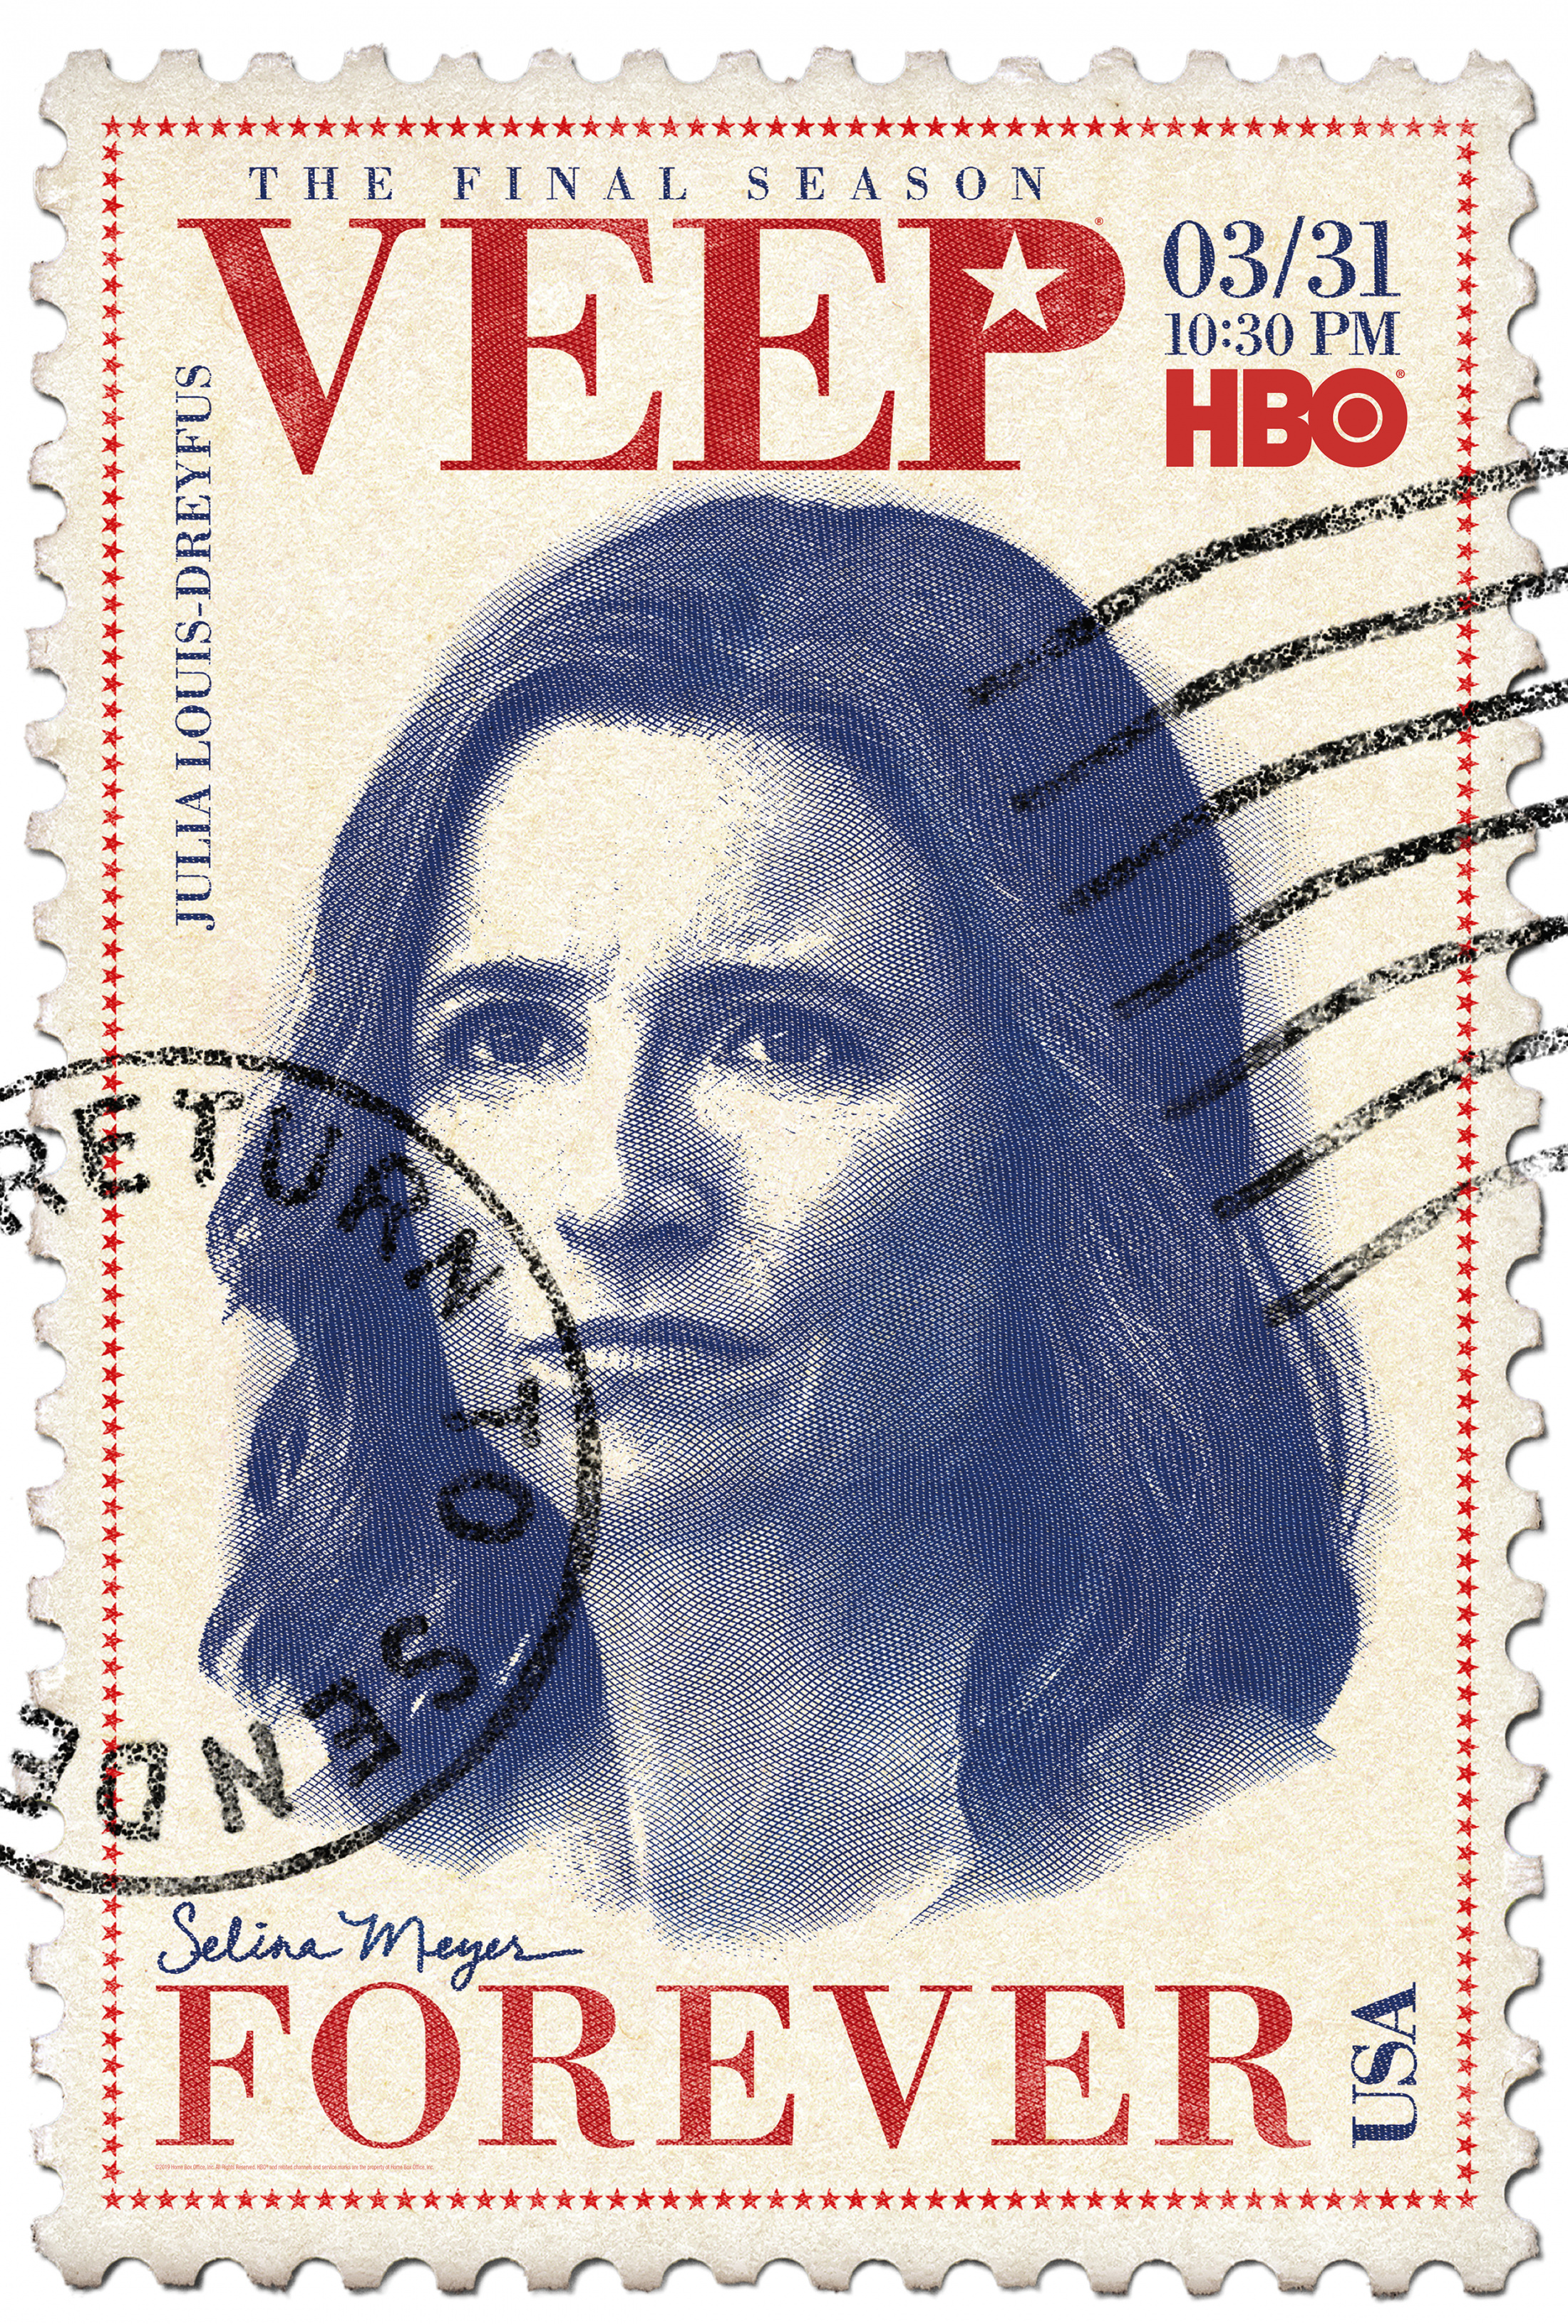 Thumbnail for VEEP S7 Key Art